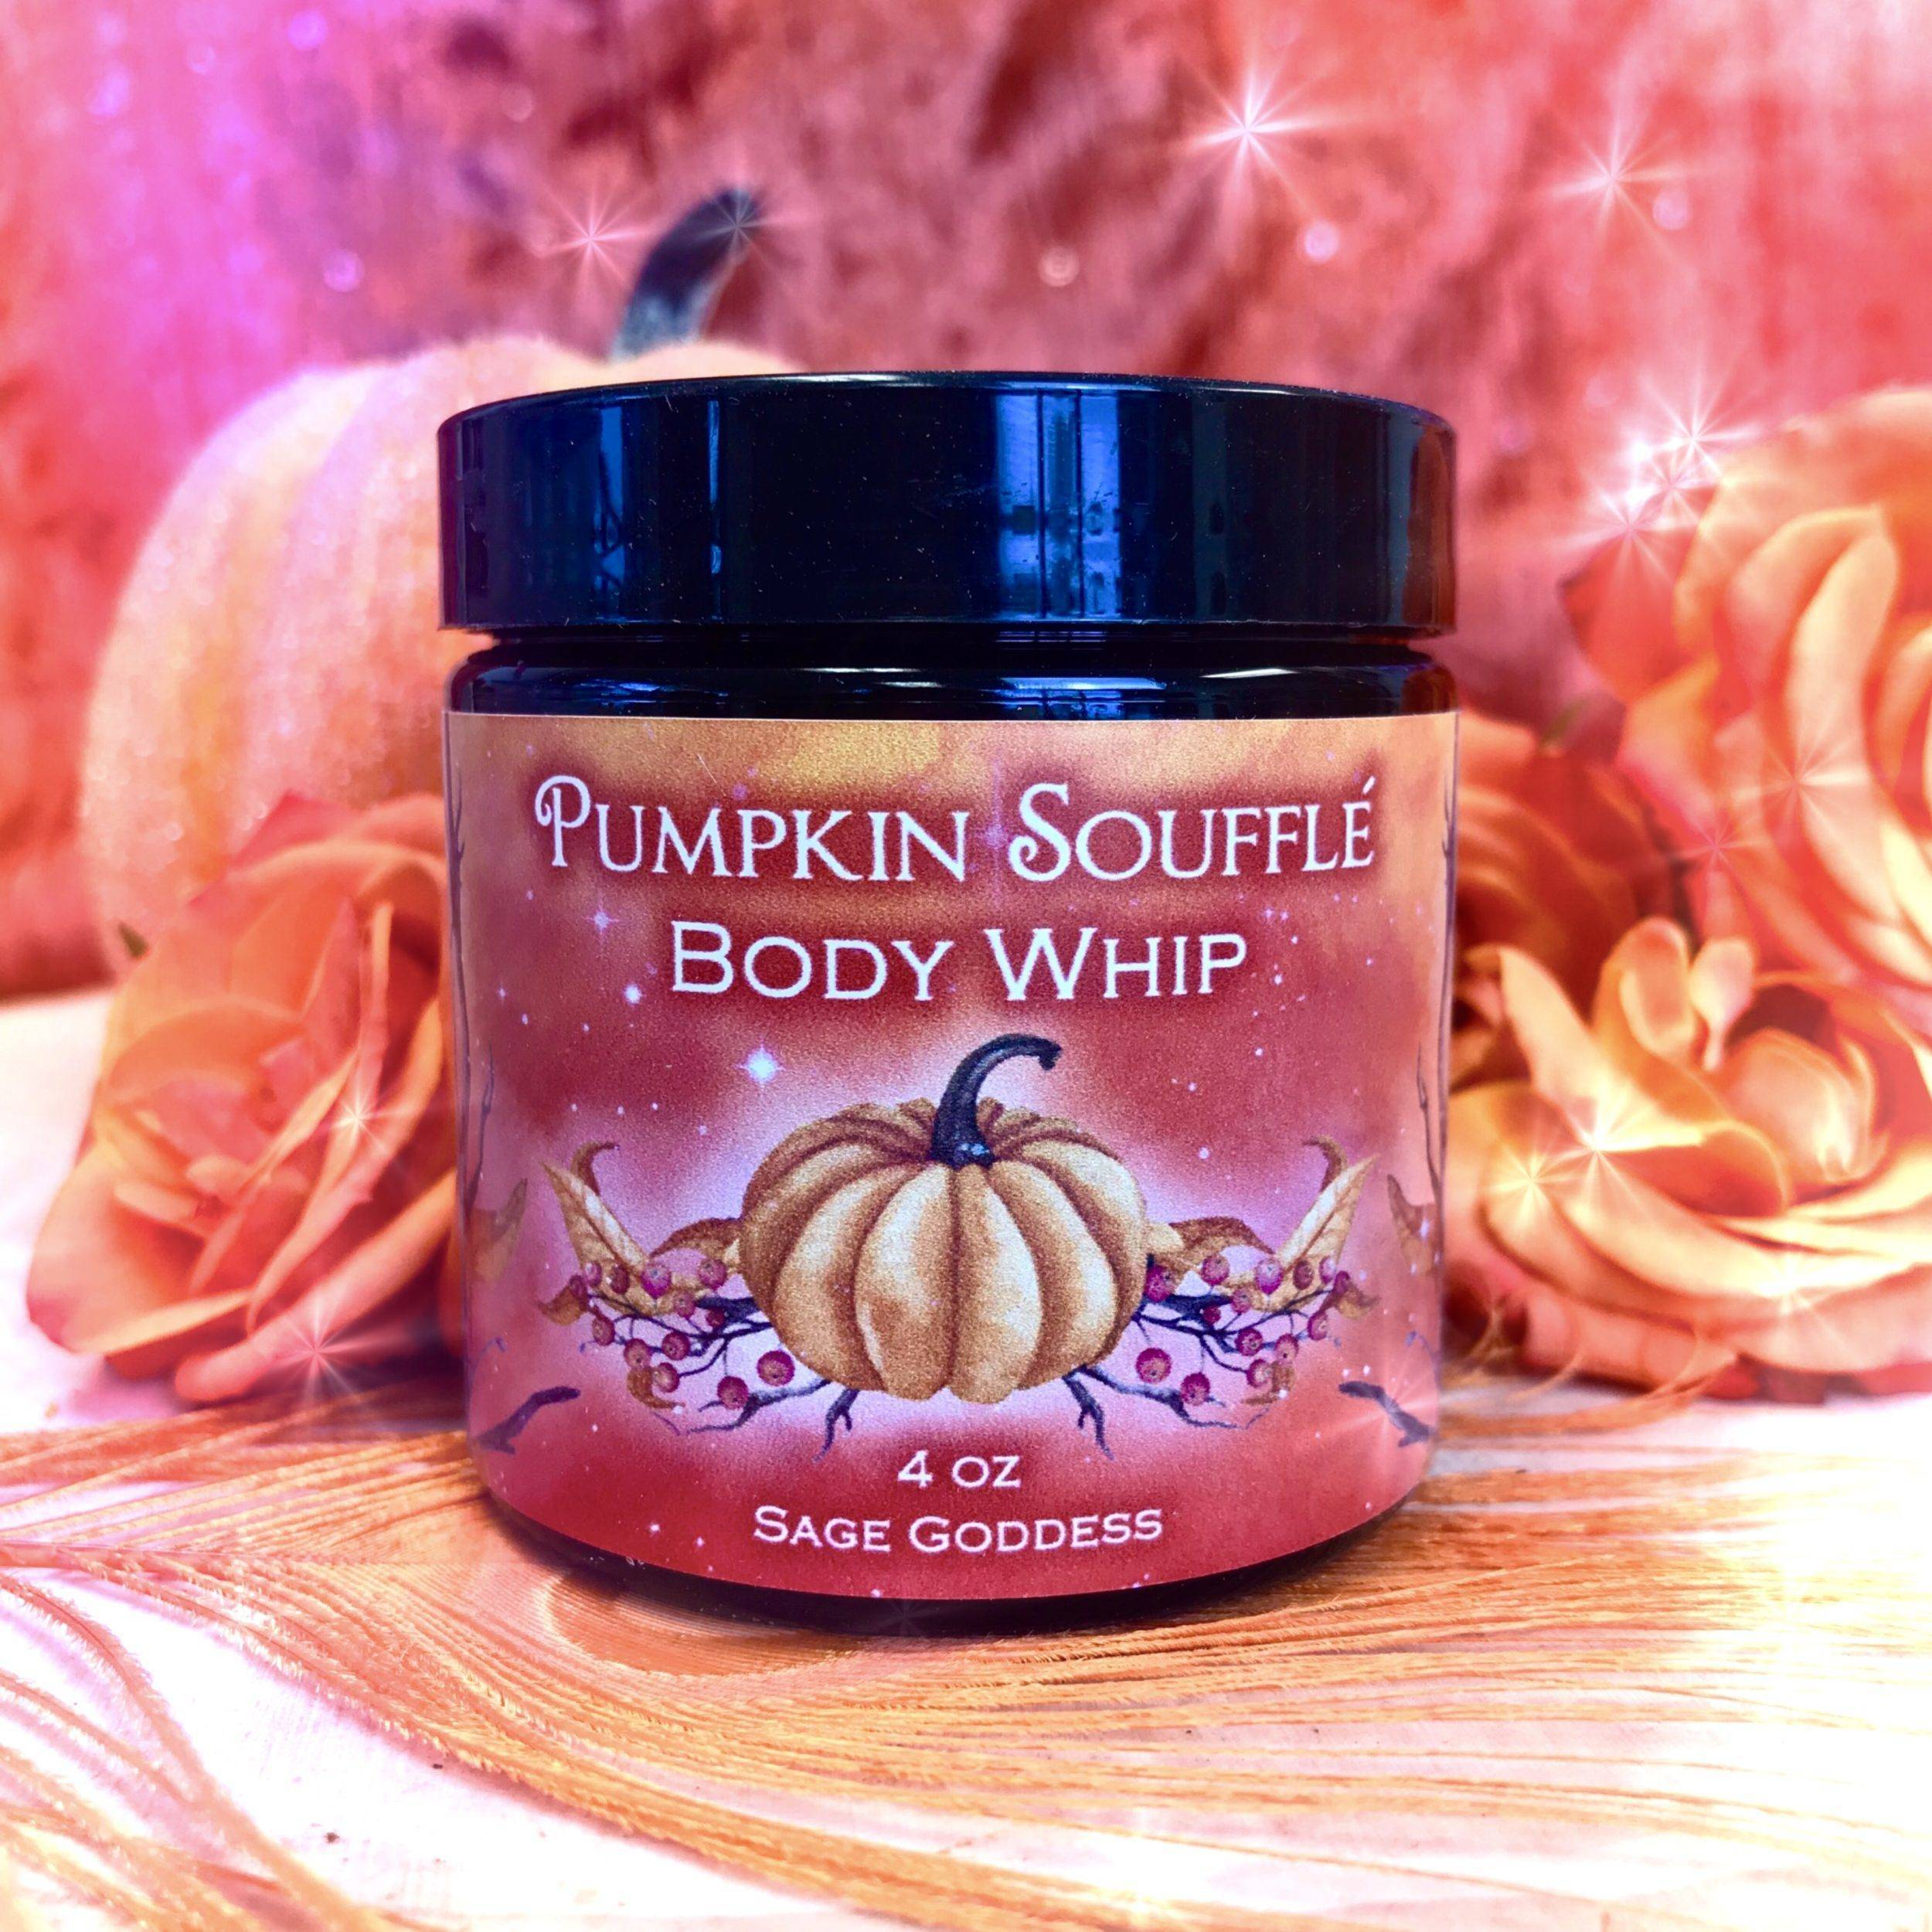 Pumpkin_Souffle_Body_Whip_1of2_9_9